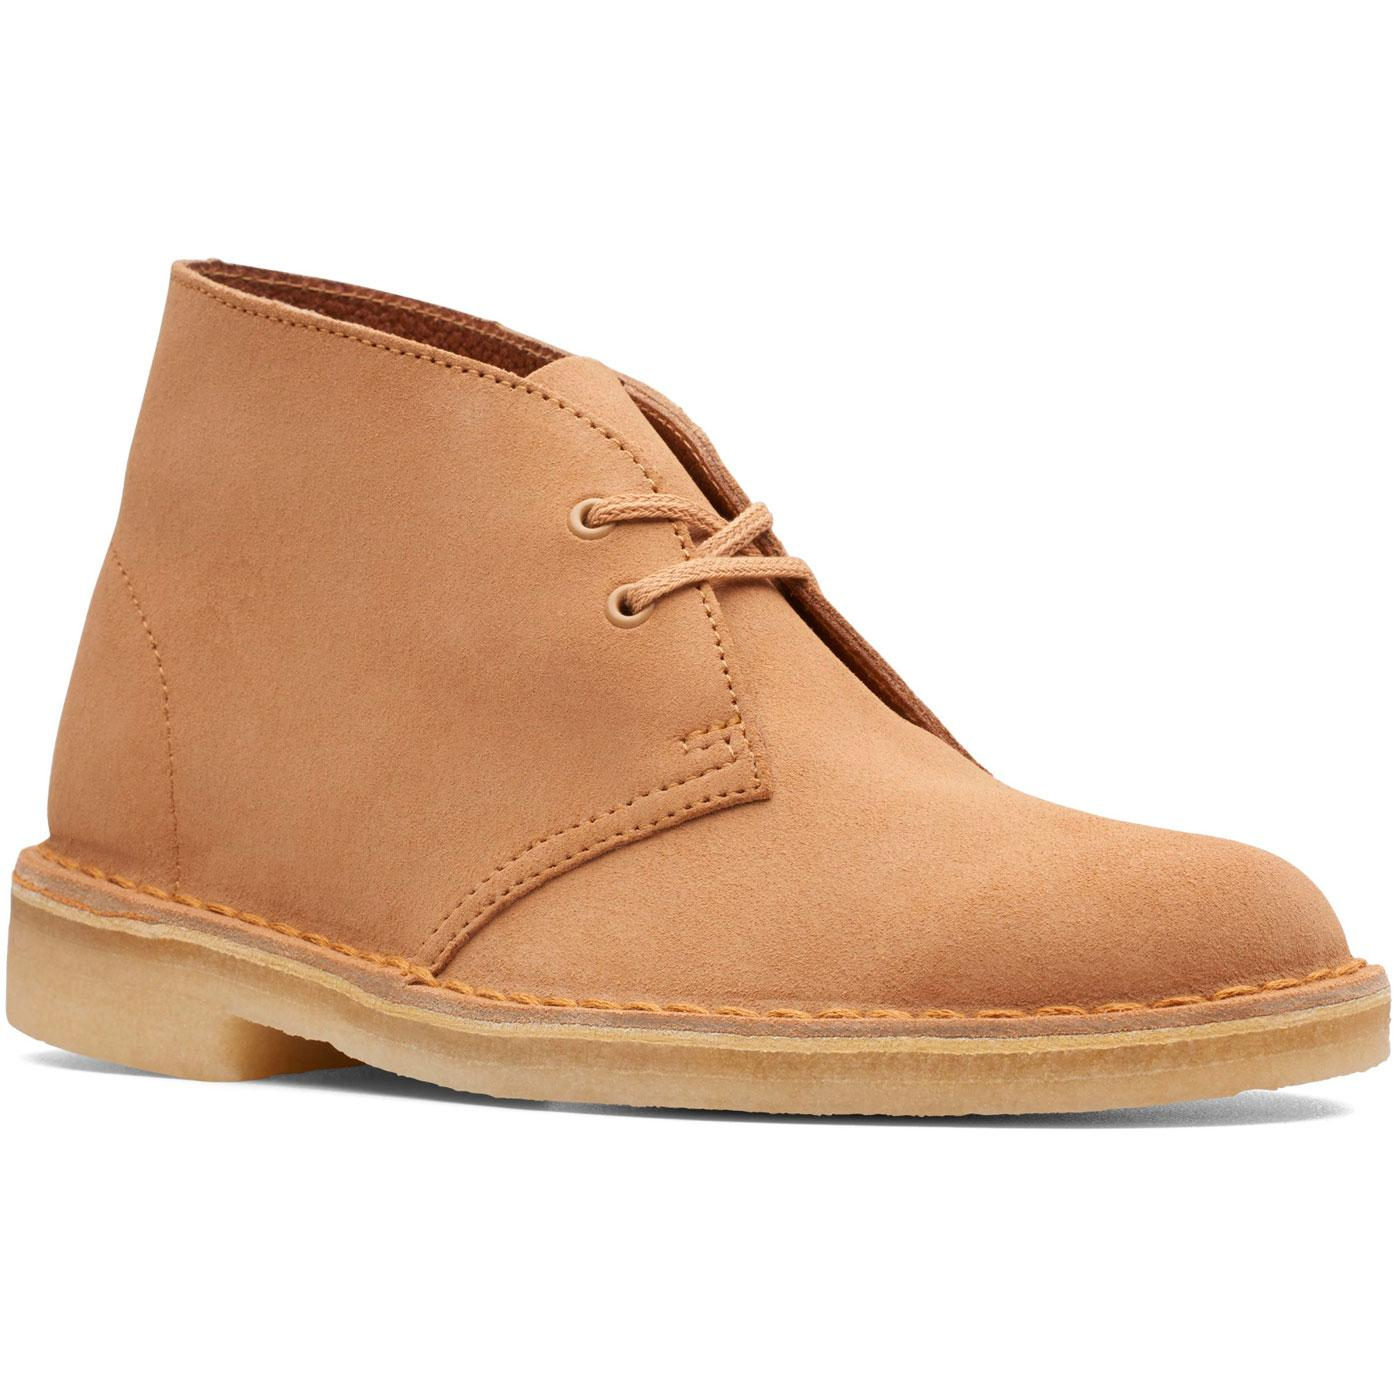 CLARKS ORIGINALS Women's Desert Boots (Light Tan)